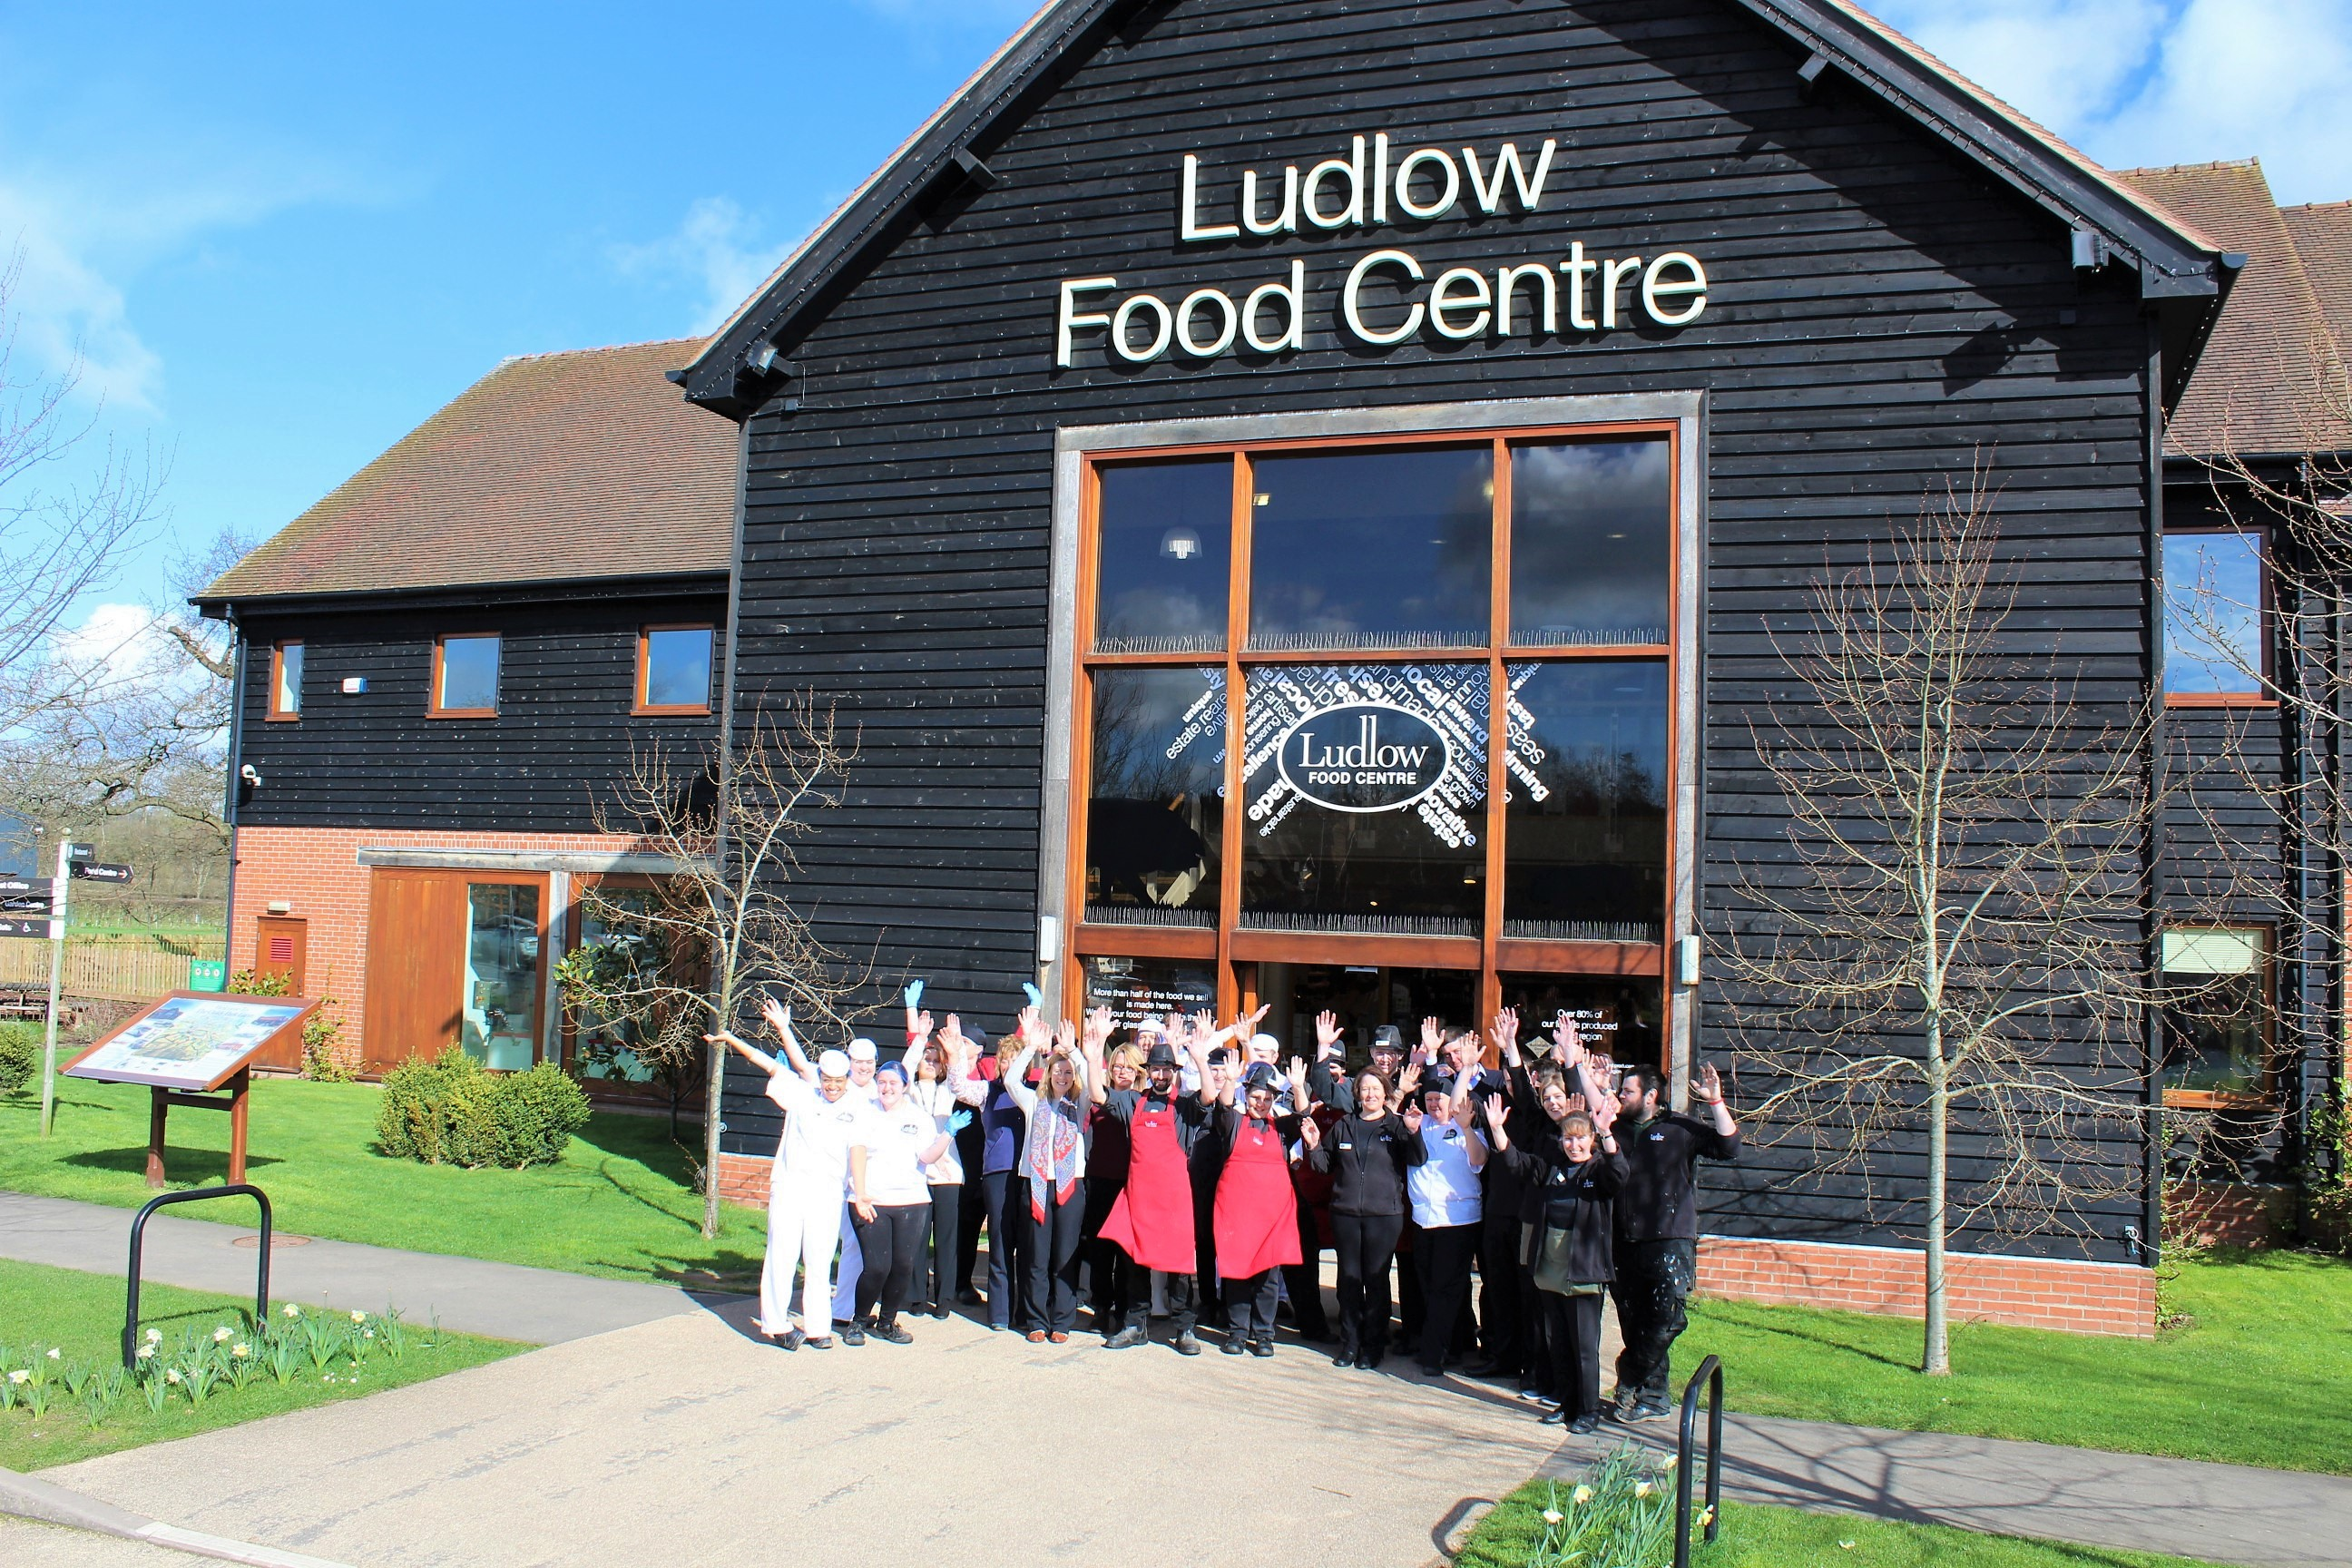 Quality, Local, Innovative: The Ludlow Food Centre